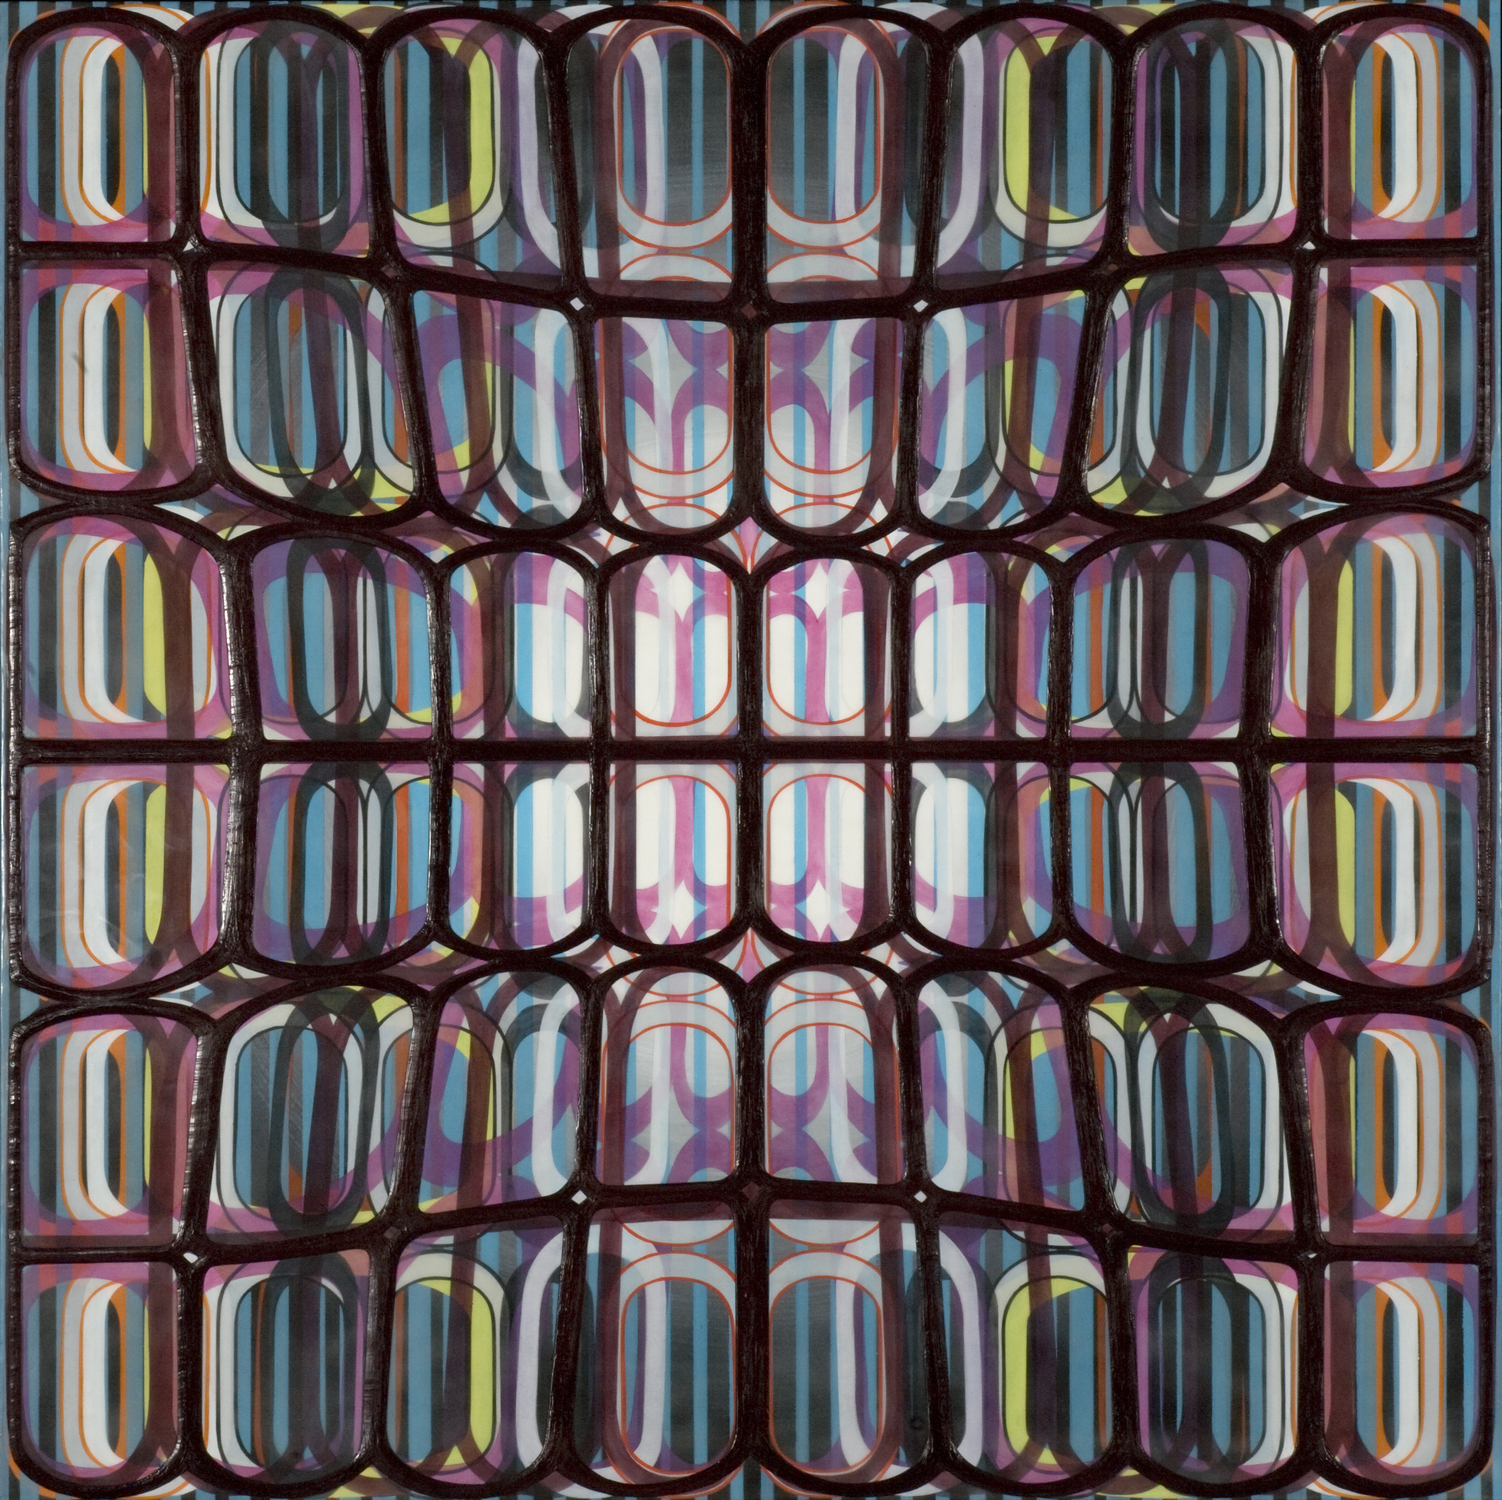 """Identical/Variation (pink, blue, green, black) #3, 2007 Oil and encaustic on panel 36"""" x 36"""" x 2"""""""